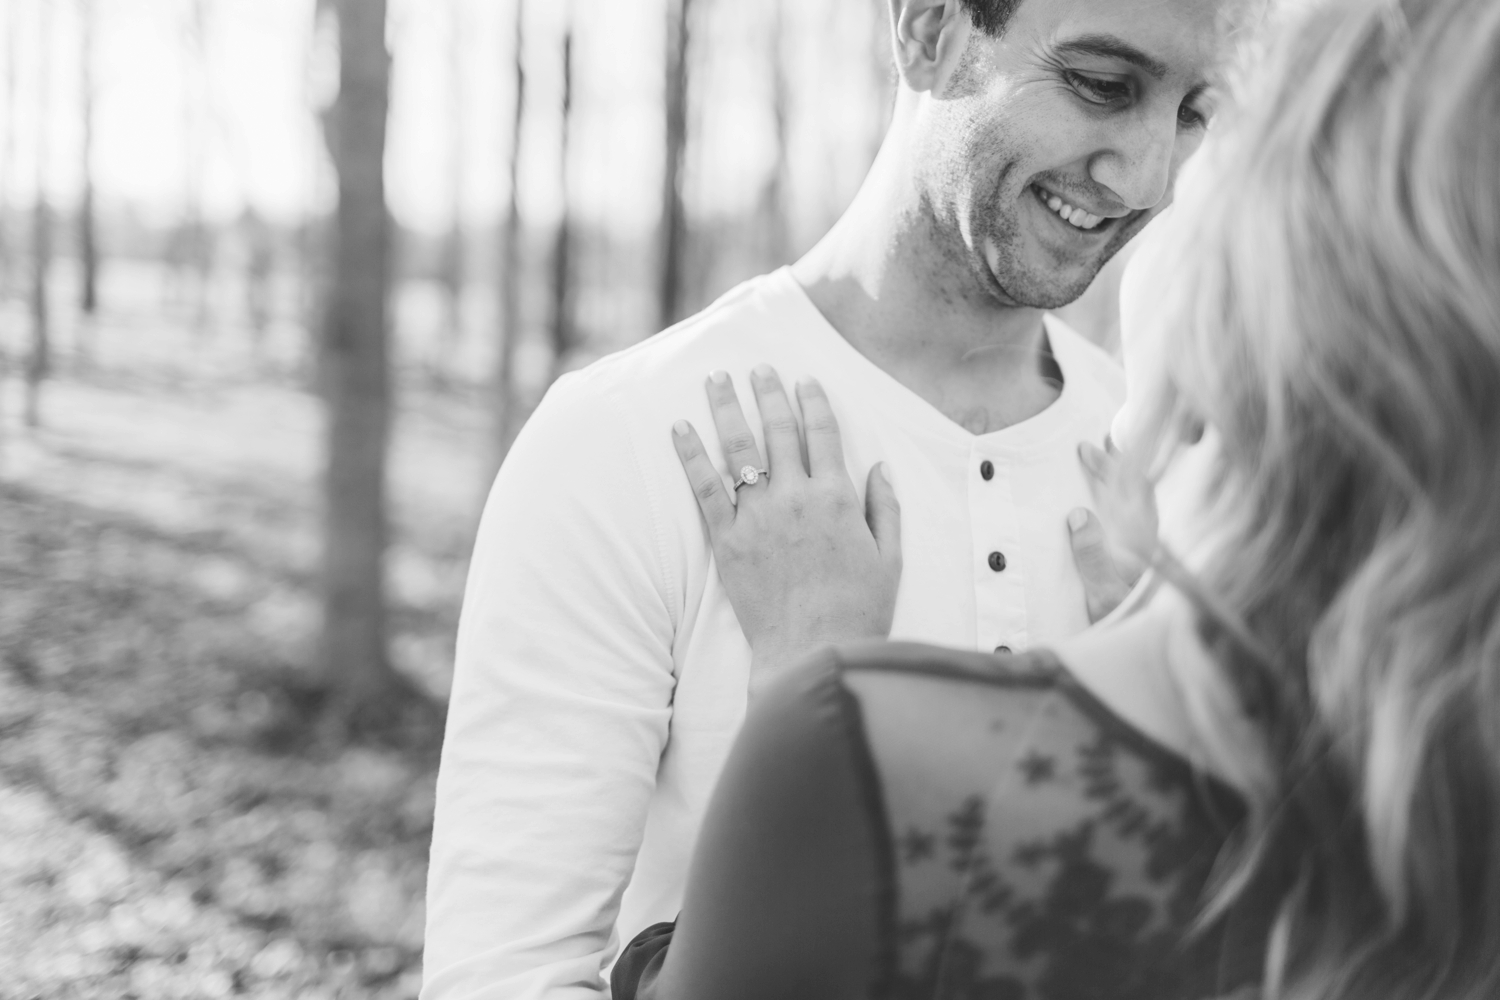 indianapolis_wedding_photographer_golden_hour_engagement_chloe_luka_photography_6095.jpg